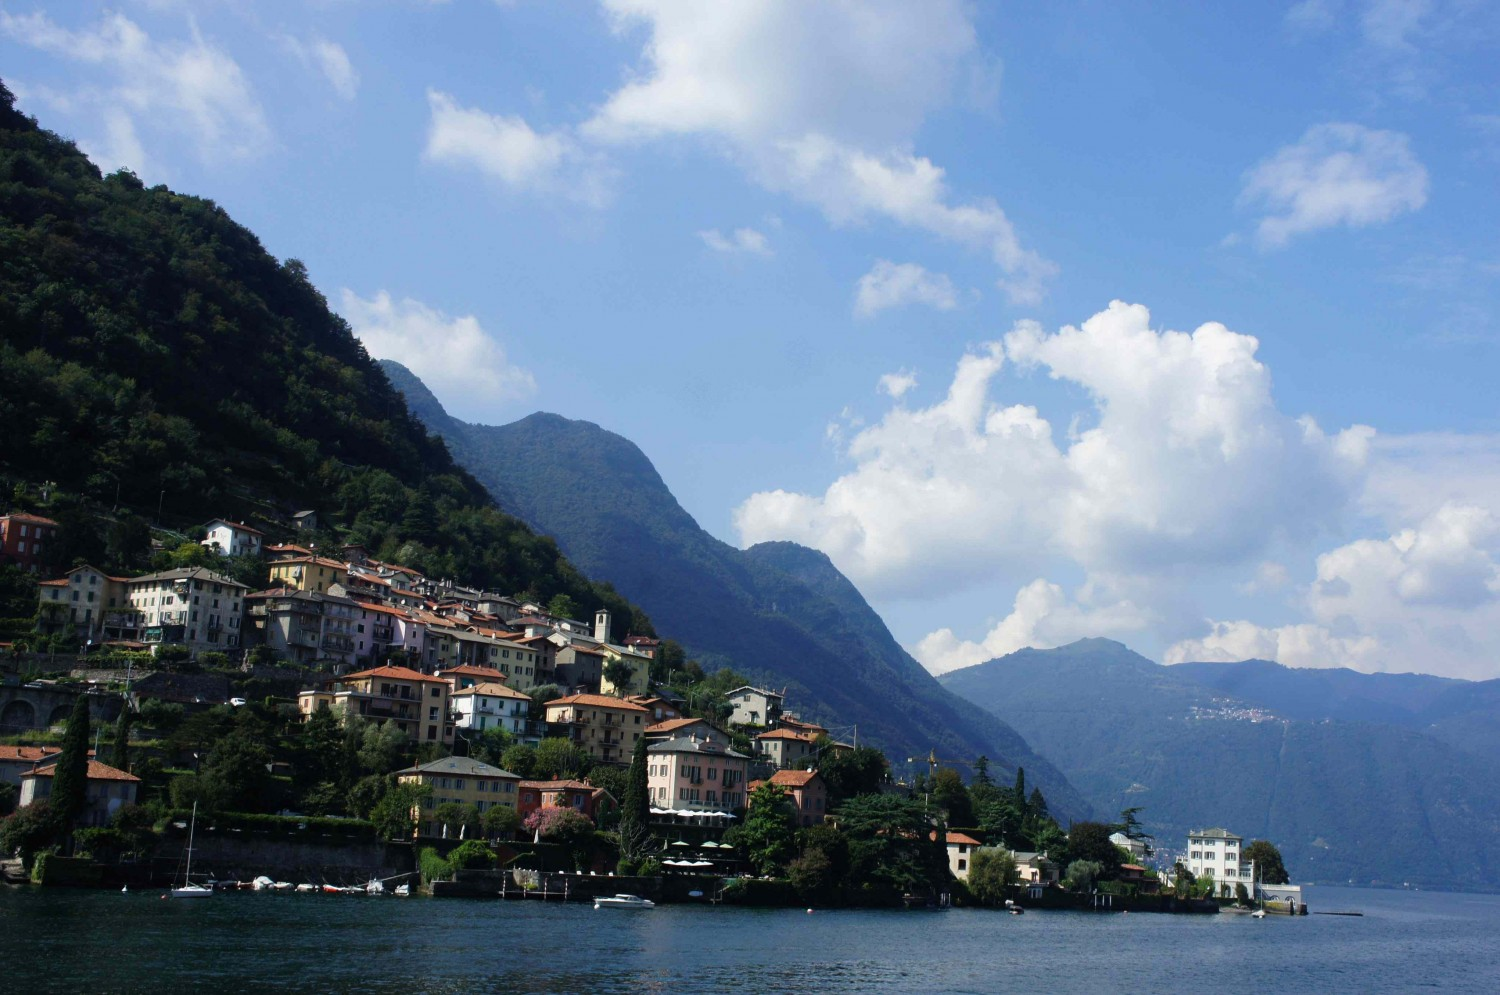 An afternoon on Lake Como as a nice work break